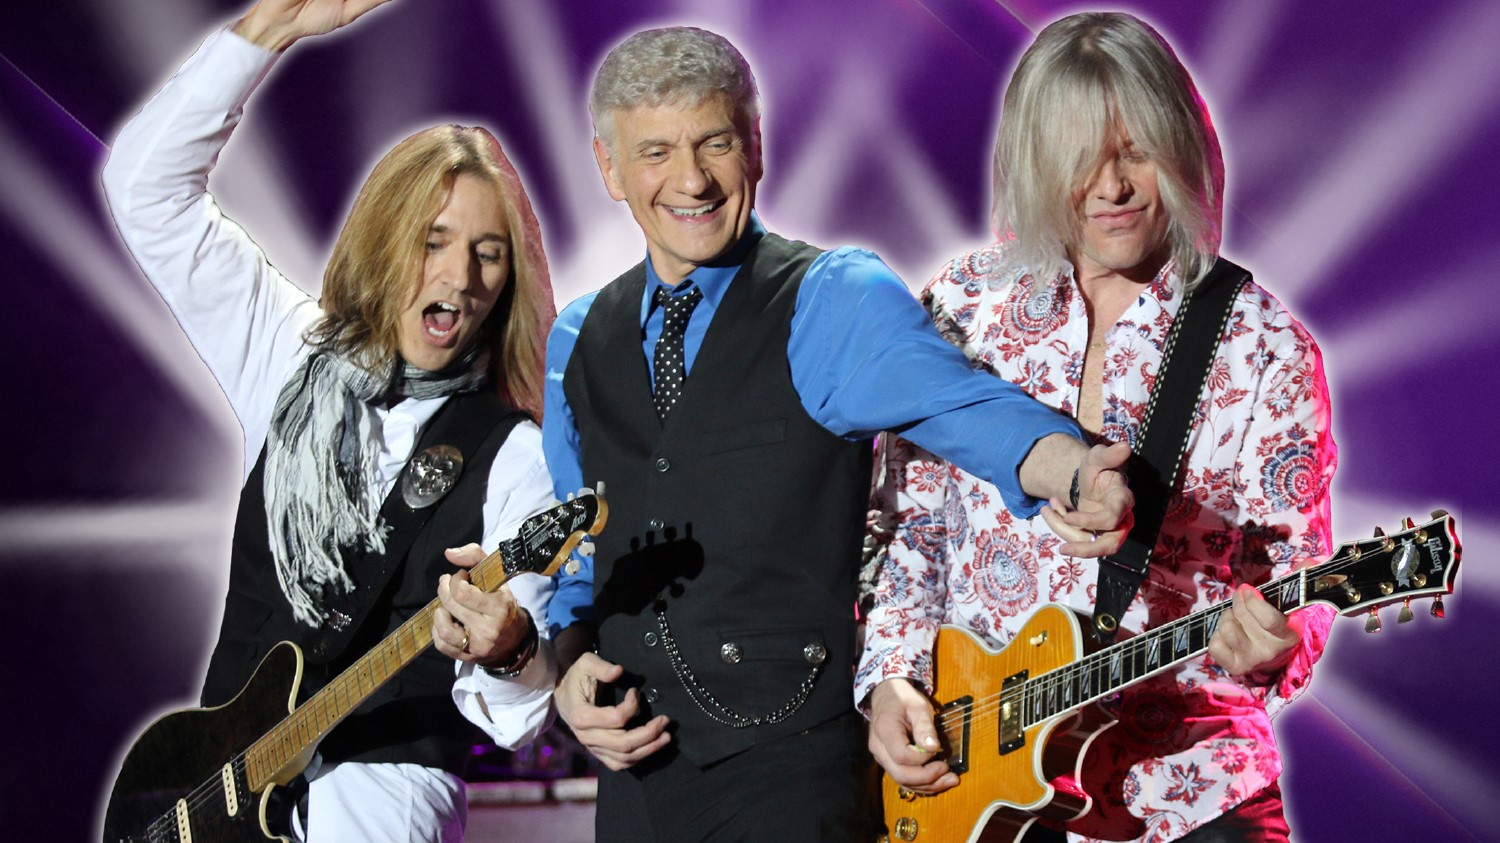 Dennis DeYoungSaturday, October 9, 2021Doors 6 p.m. | Show 7:30 p.m.Tickets start at $23 (incl. fees) In 1977, history was made upon the release of THE GRAND ILLUSION album. DENNIS DEYOUNG AND THE MUSIC OF STYX celebrate that history by performing the album in its entirety plus all eight Top Ten hits LADY, BABE, COME SAIL AWAY, TOO MUCH TIME ON MY HANDS, BEST OF TIMES, MR. ROBOTO plus classic rock anthems RENEGADE, BLUE COLLAR MAN, SUITE MADAME BLUE and many more. DENNIS DEYOUNG is a founding member of STYX and the lead singer and songwriter on seven of the bands eight Top Ten hits. DENNIS is a legendary singer, songwriter, keyboardist, composer and record producer with a career spanning over 40 years. His voice is one of the most recognizable in the music world today and continues to inspire new generations of fans. THE ORIGINAL VOICE....ALL THE CLASSIC HITS….ALL THE MEMORIES....ONE UNFORGETTABLE EVENING.